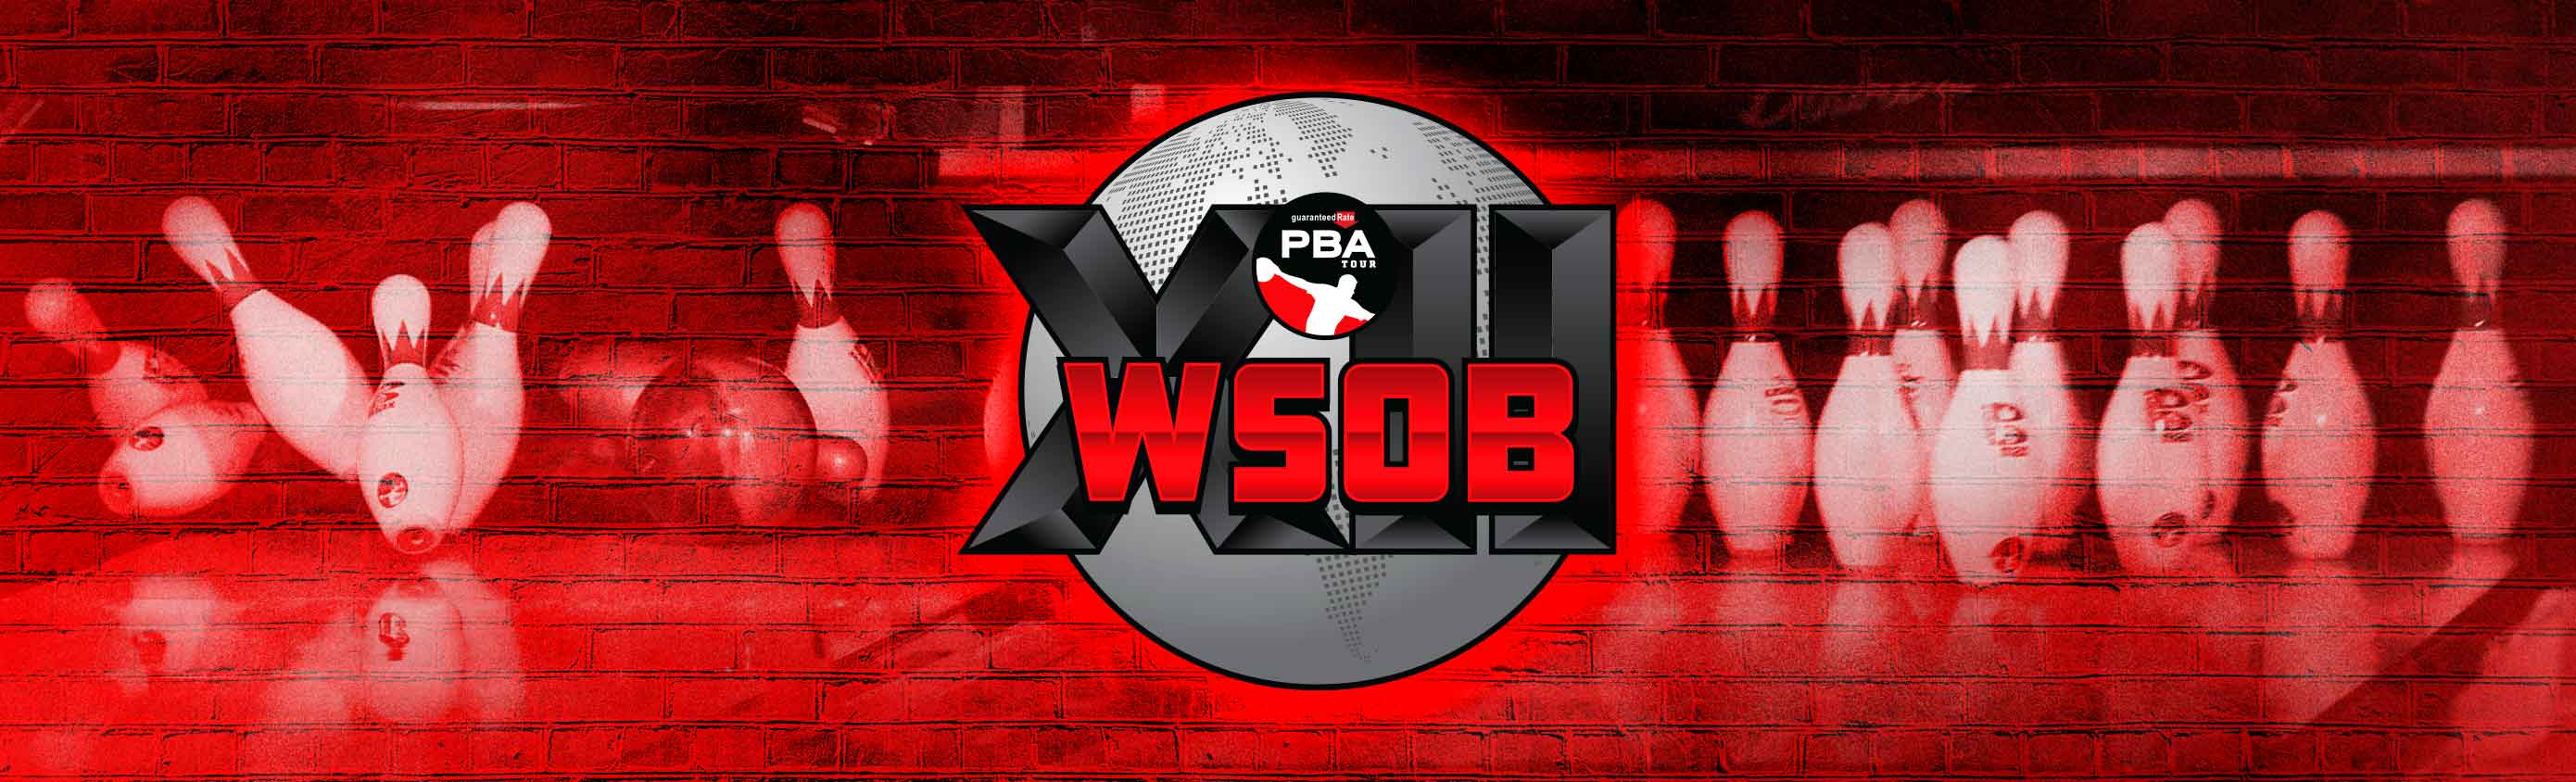 WSOB Logo with bowling pins in the background